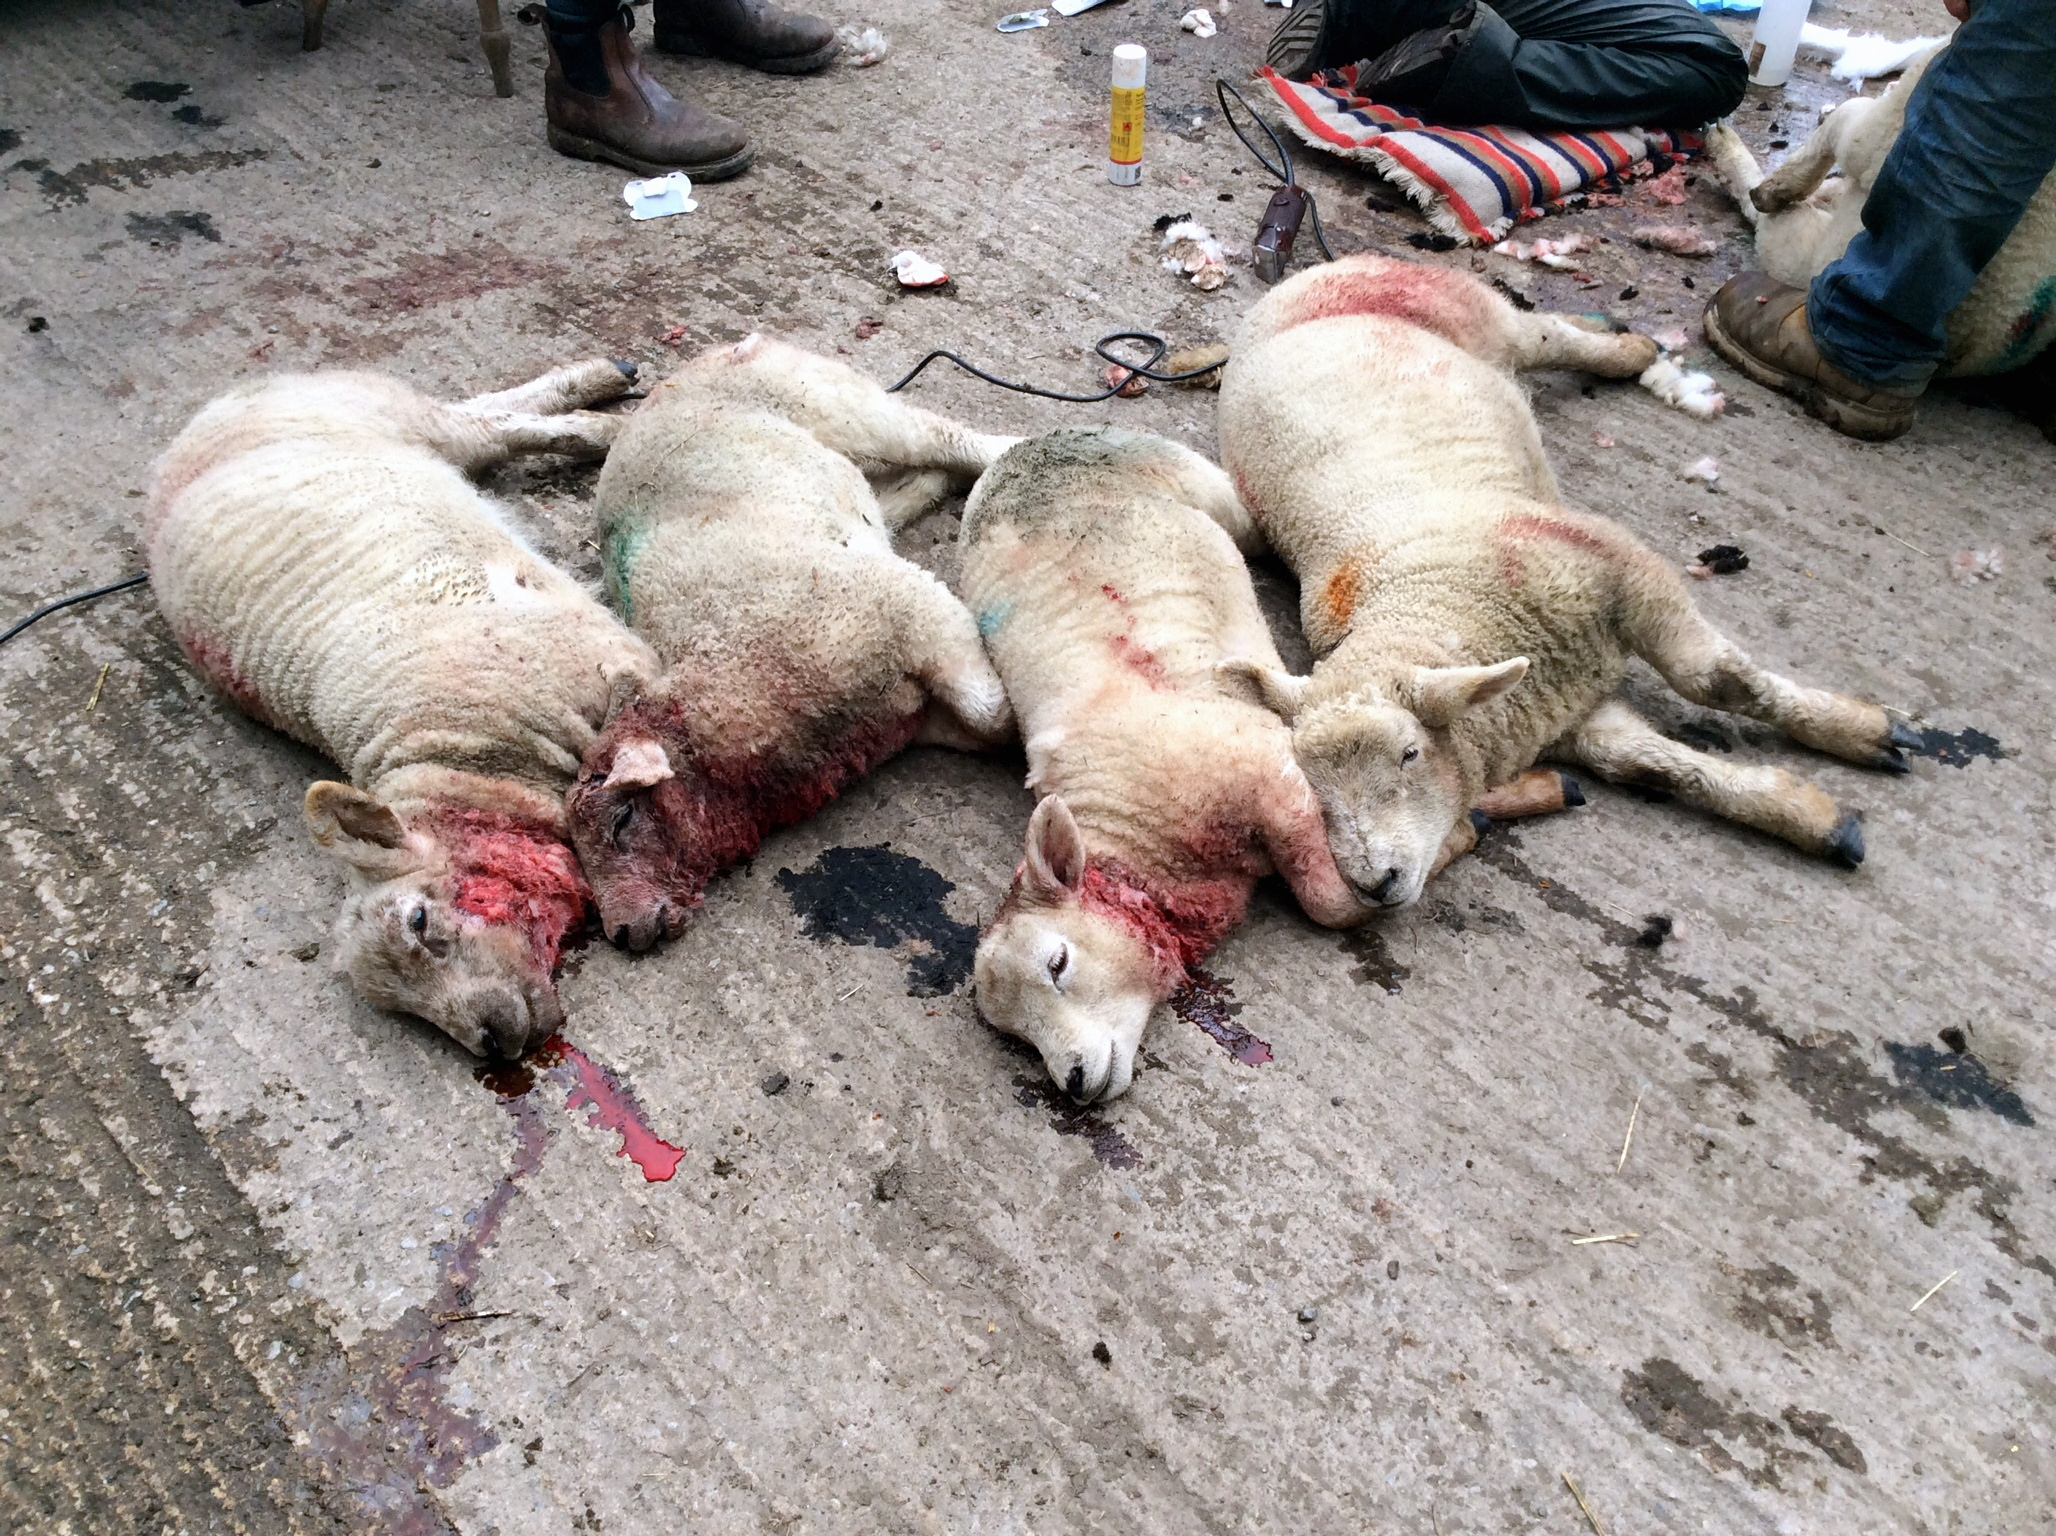 Some of the animals left dead by the dog attack on a flock of sheep in a field on an Otley Chevin farm